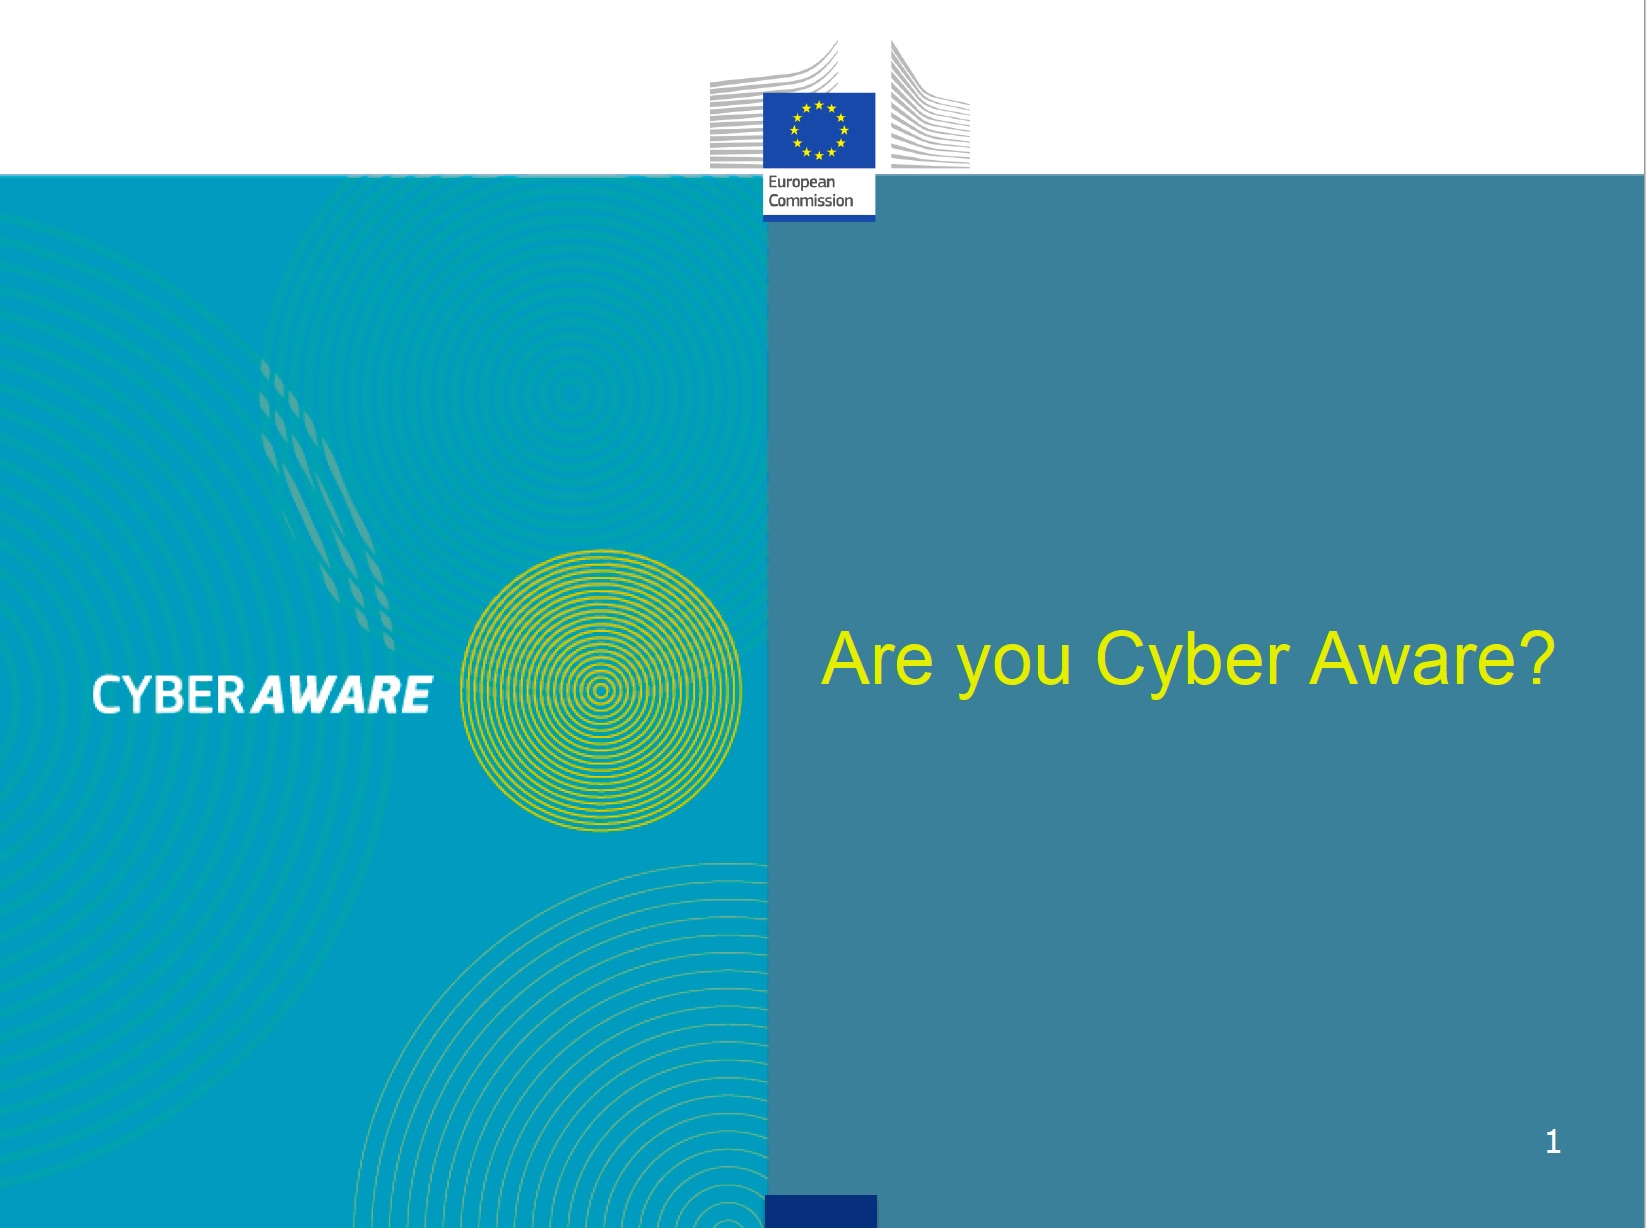 DG DIGIT cyber aware presentation